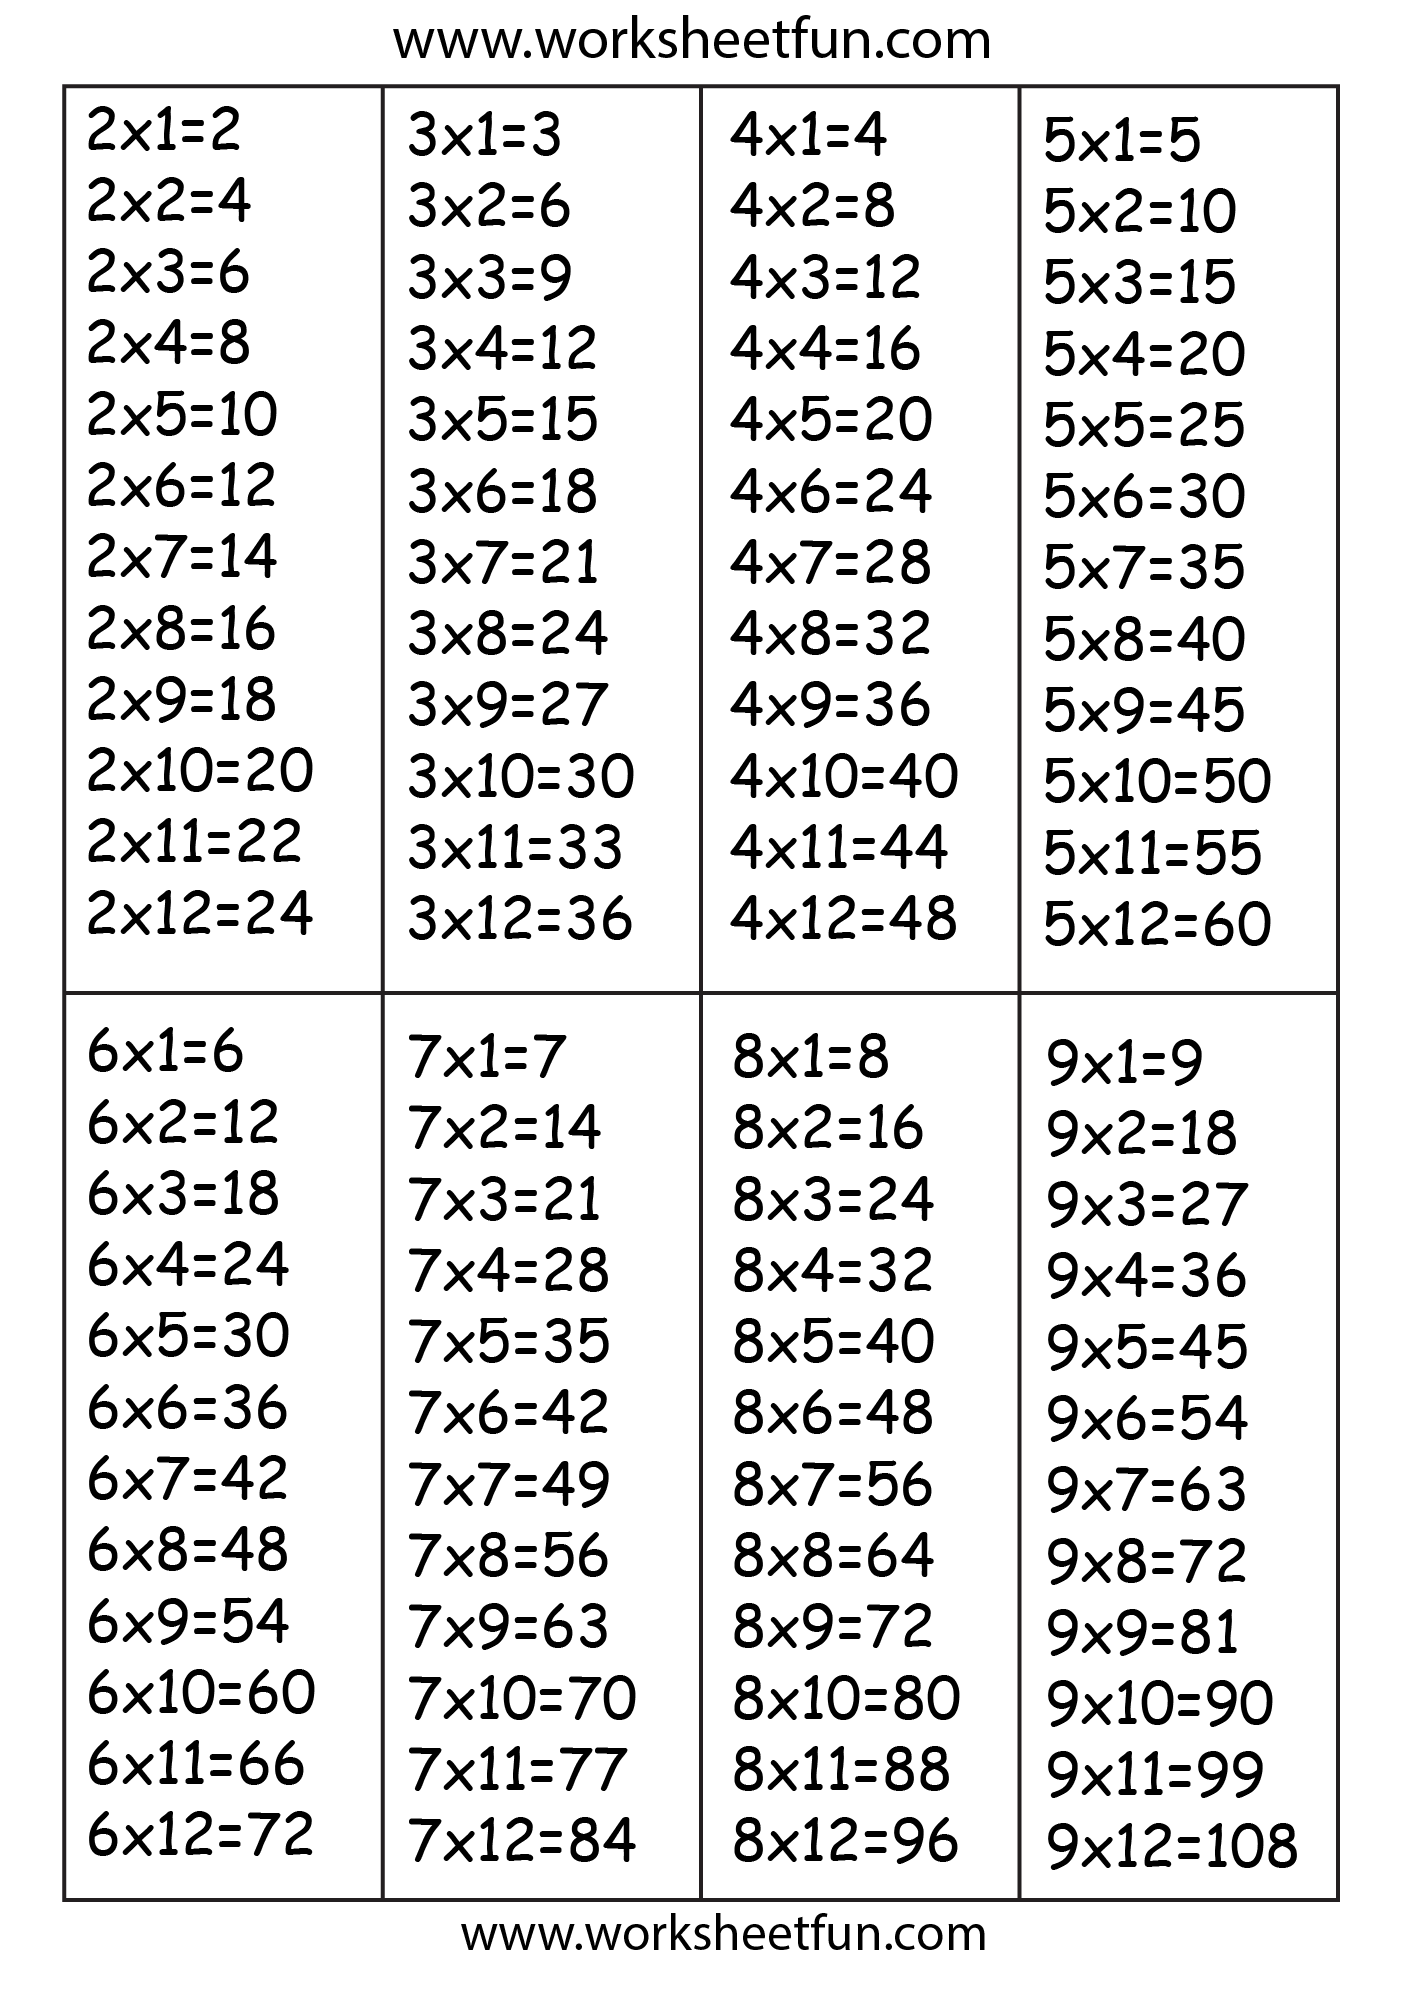 Times Tables FREE Printable Worksheets Worksheetfun – Multiplication Facts Worksheets 1-12